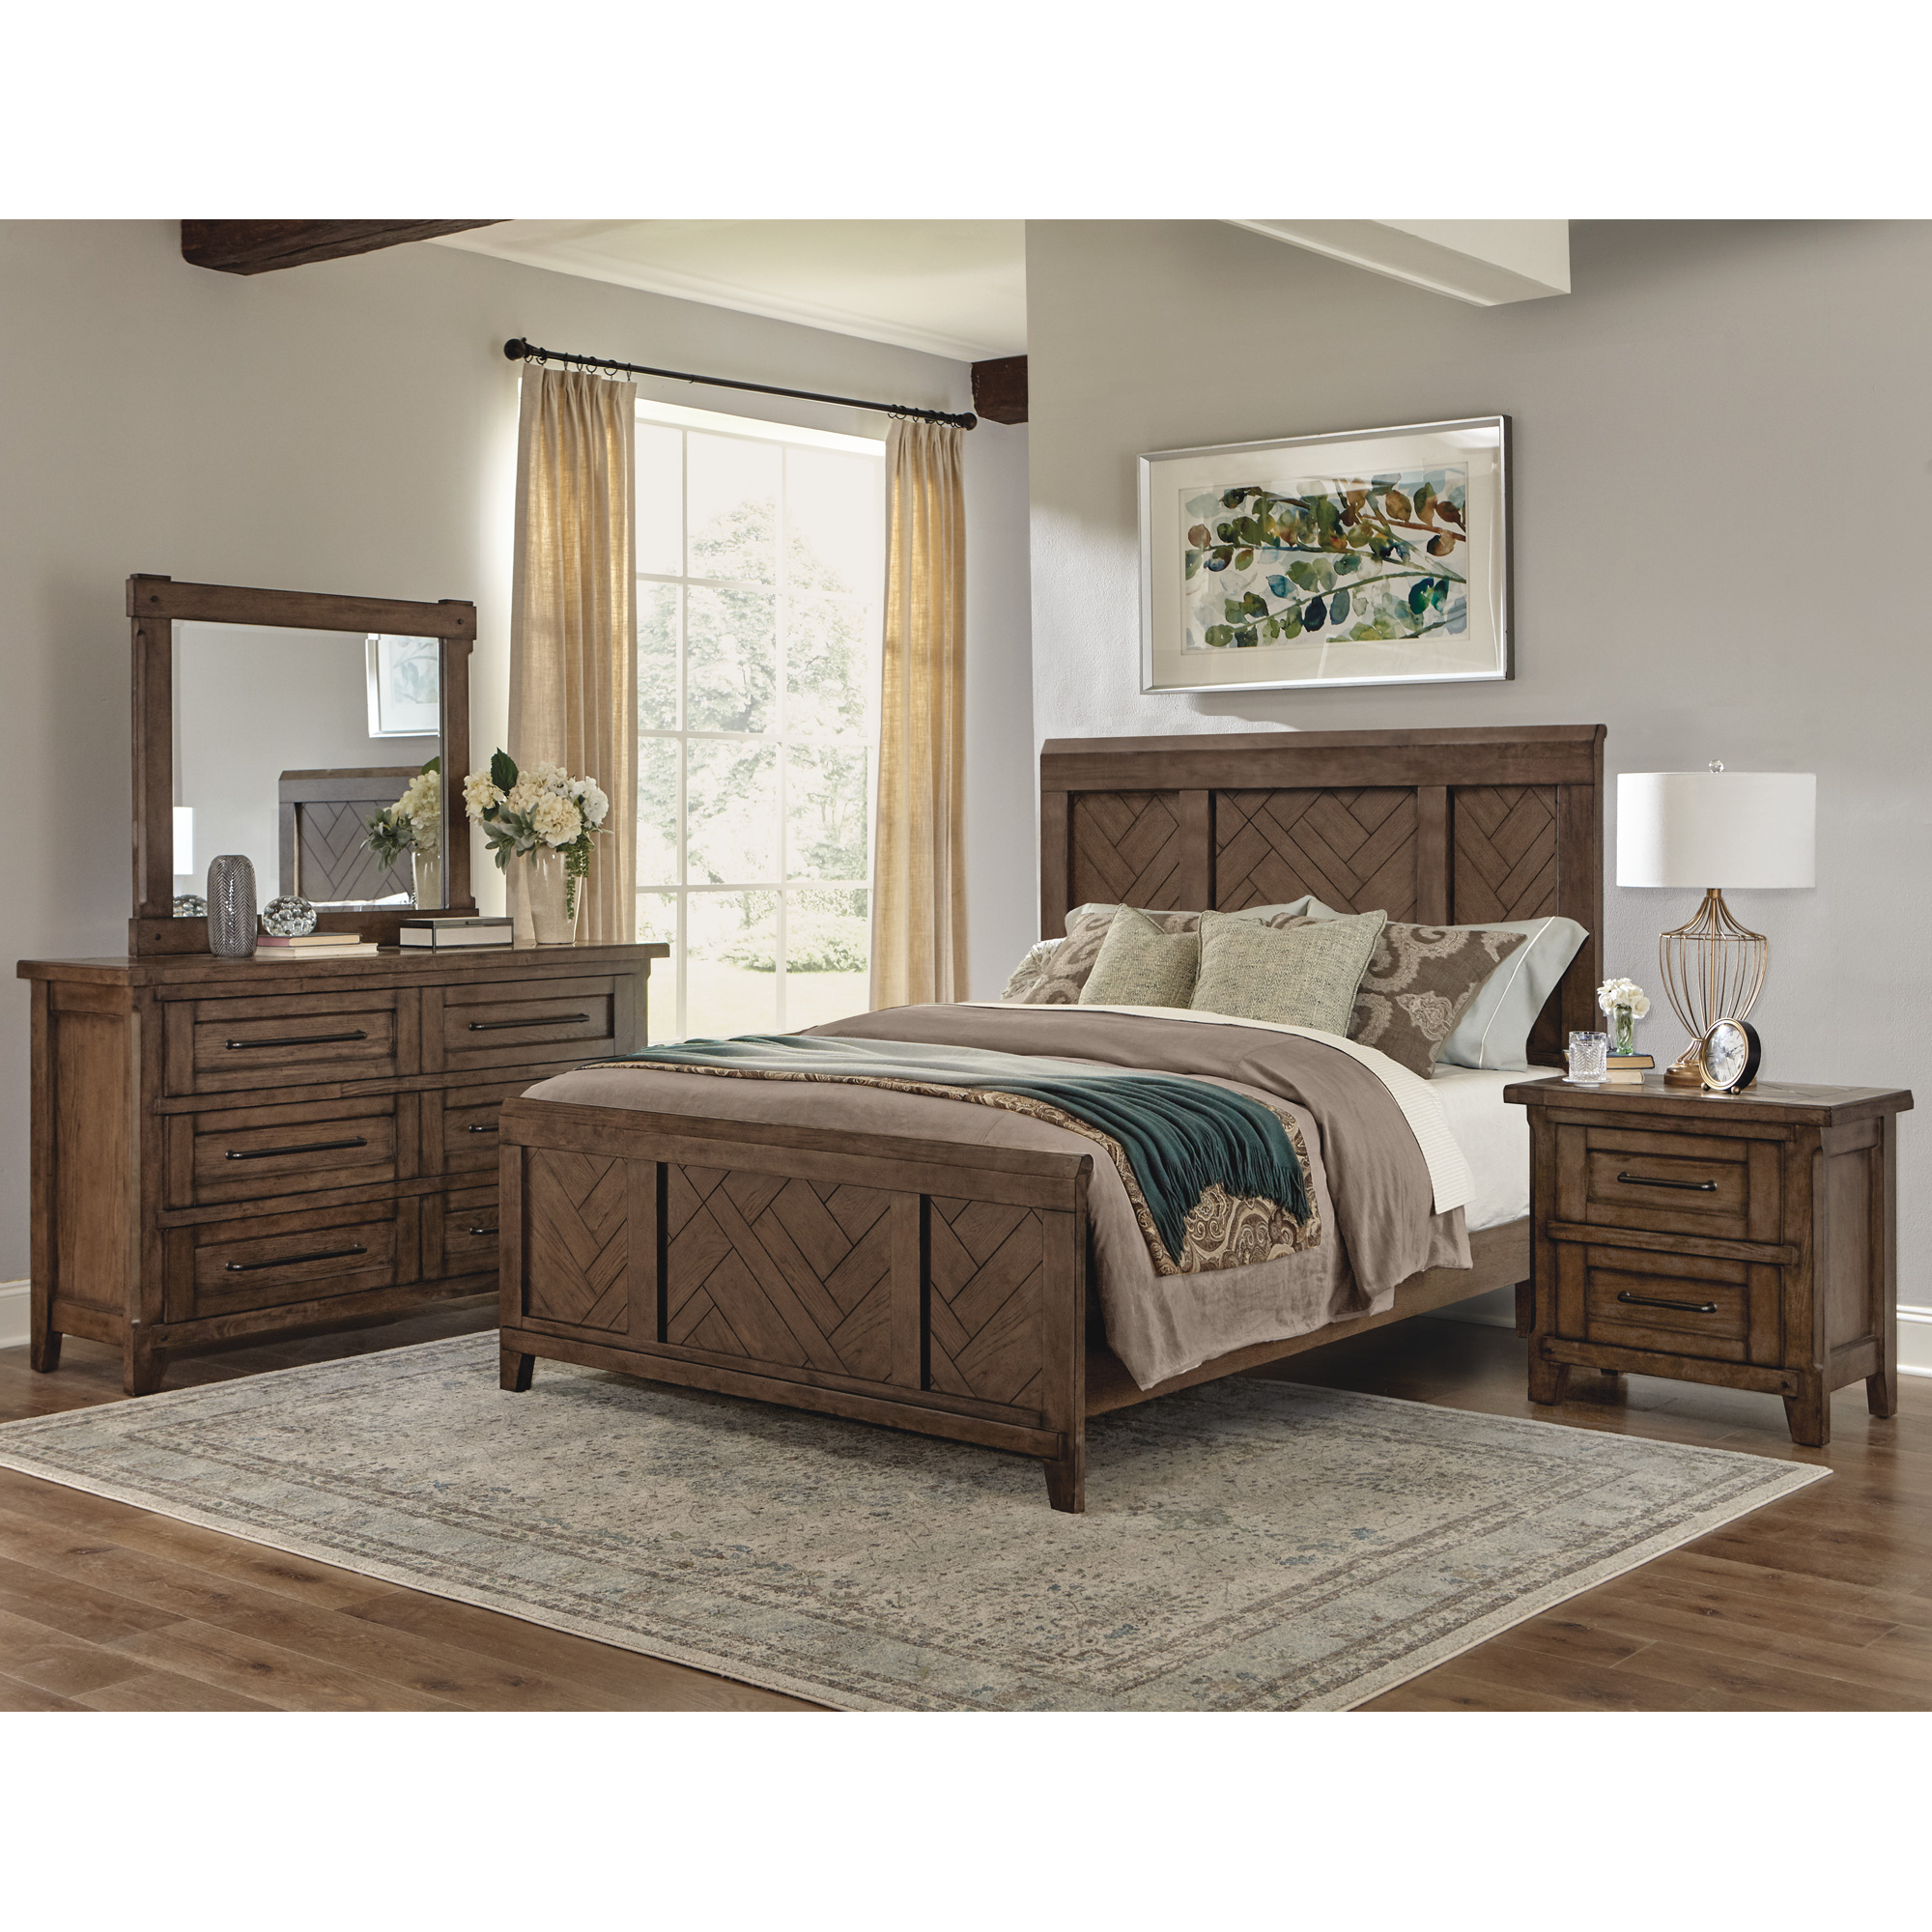 Davis Direct | Patches Gray Brown King Panel 4 Piece Room Group Bedroom Set